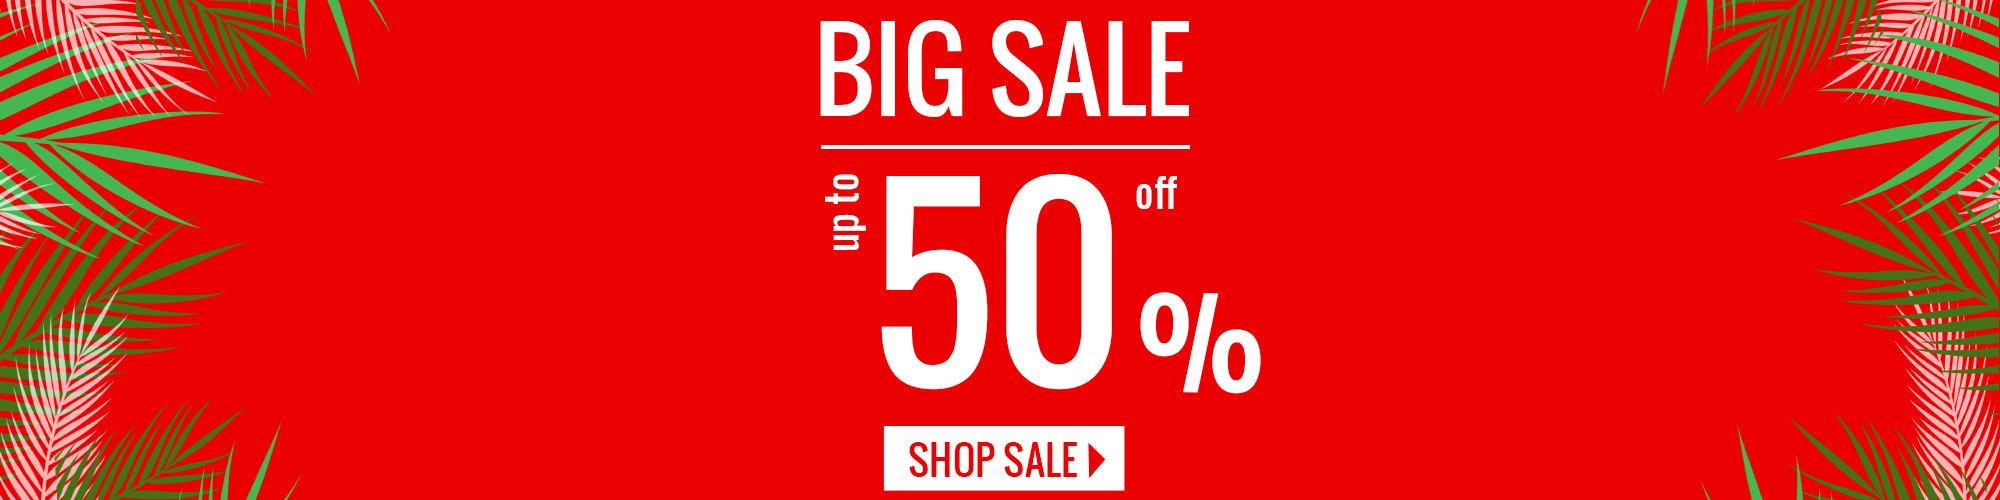 Rocket Dog Big Sale up to 50% Off